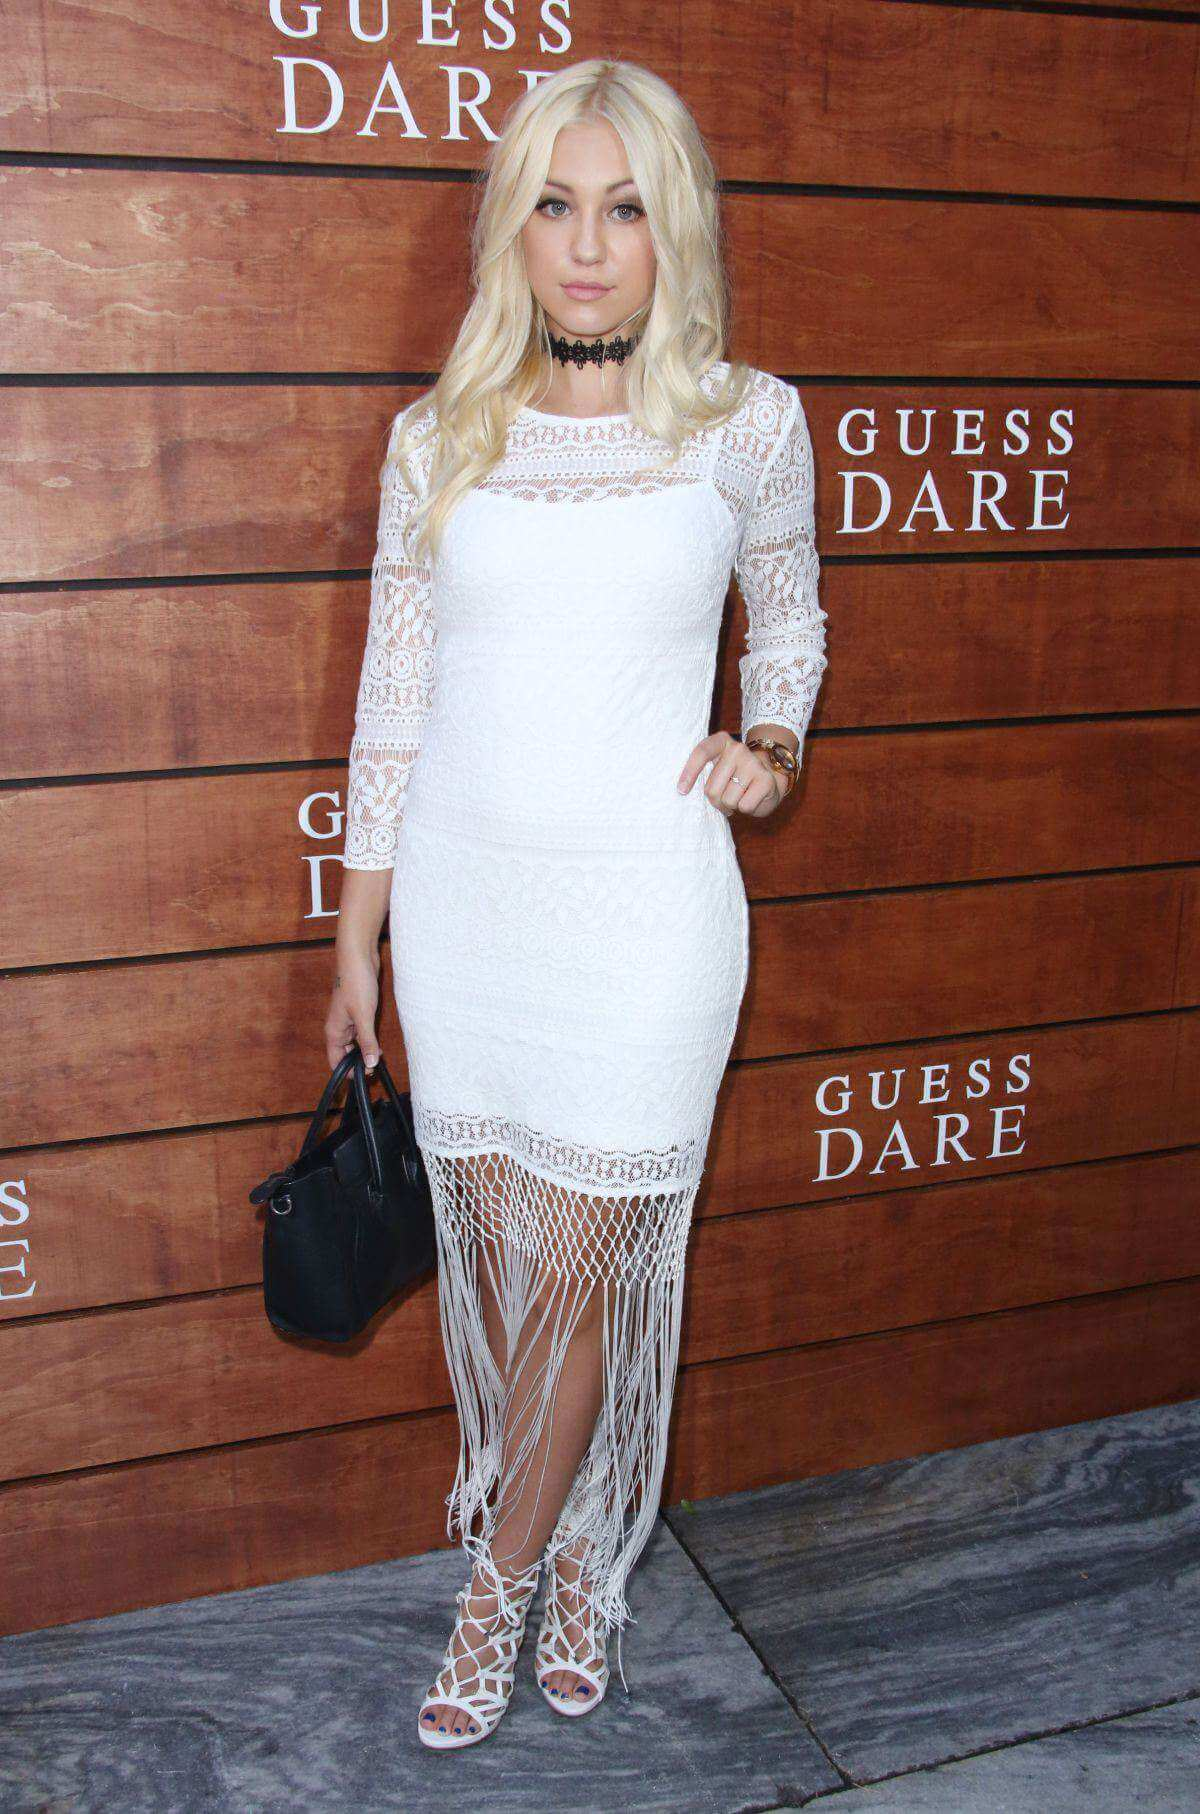 ava-sambora-guess-dare-double-dare-fragrance-launch-005